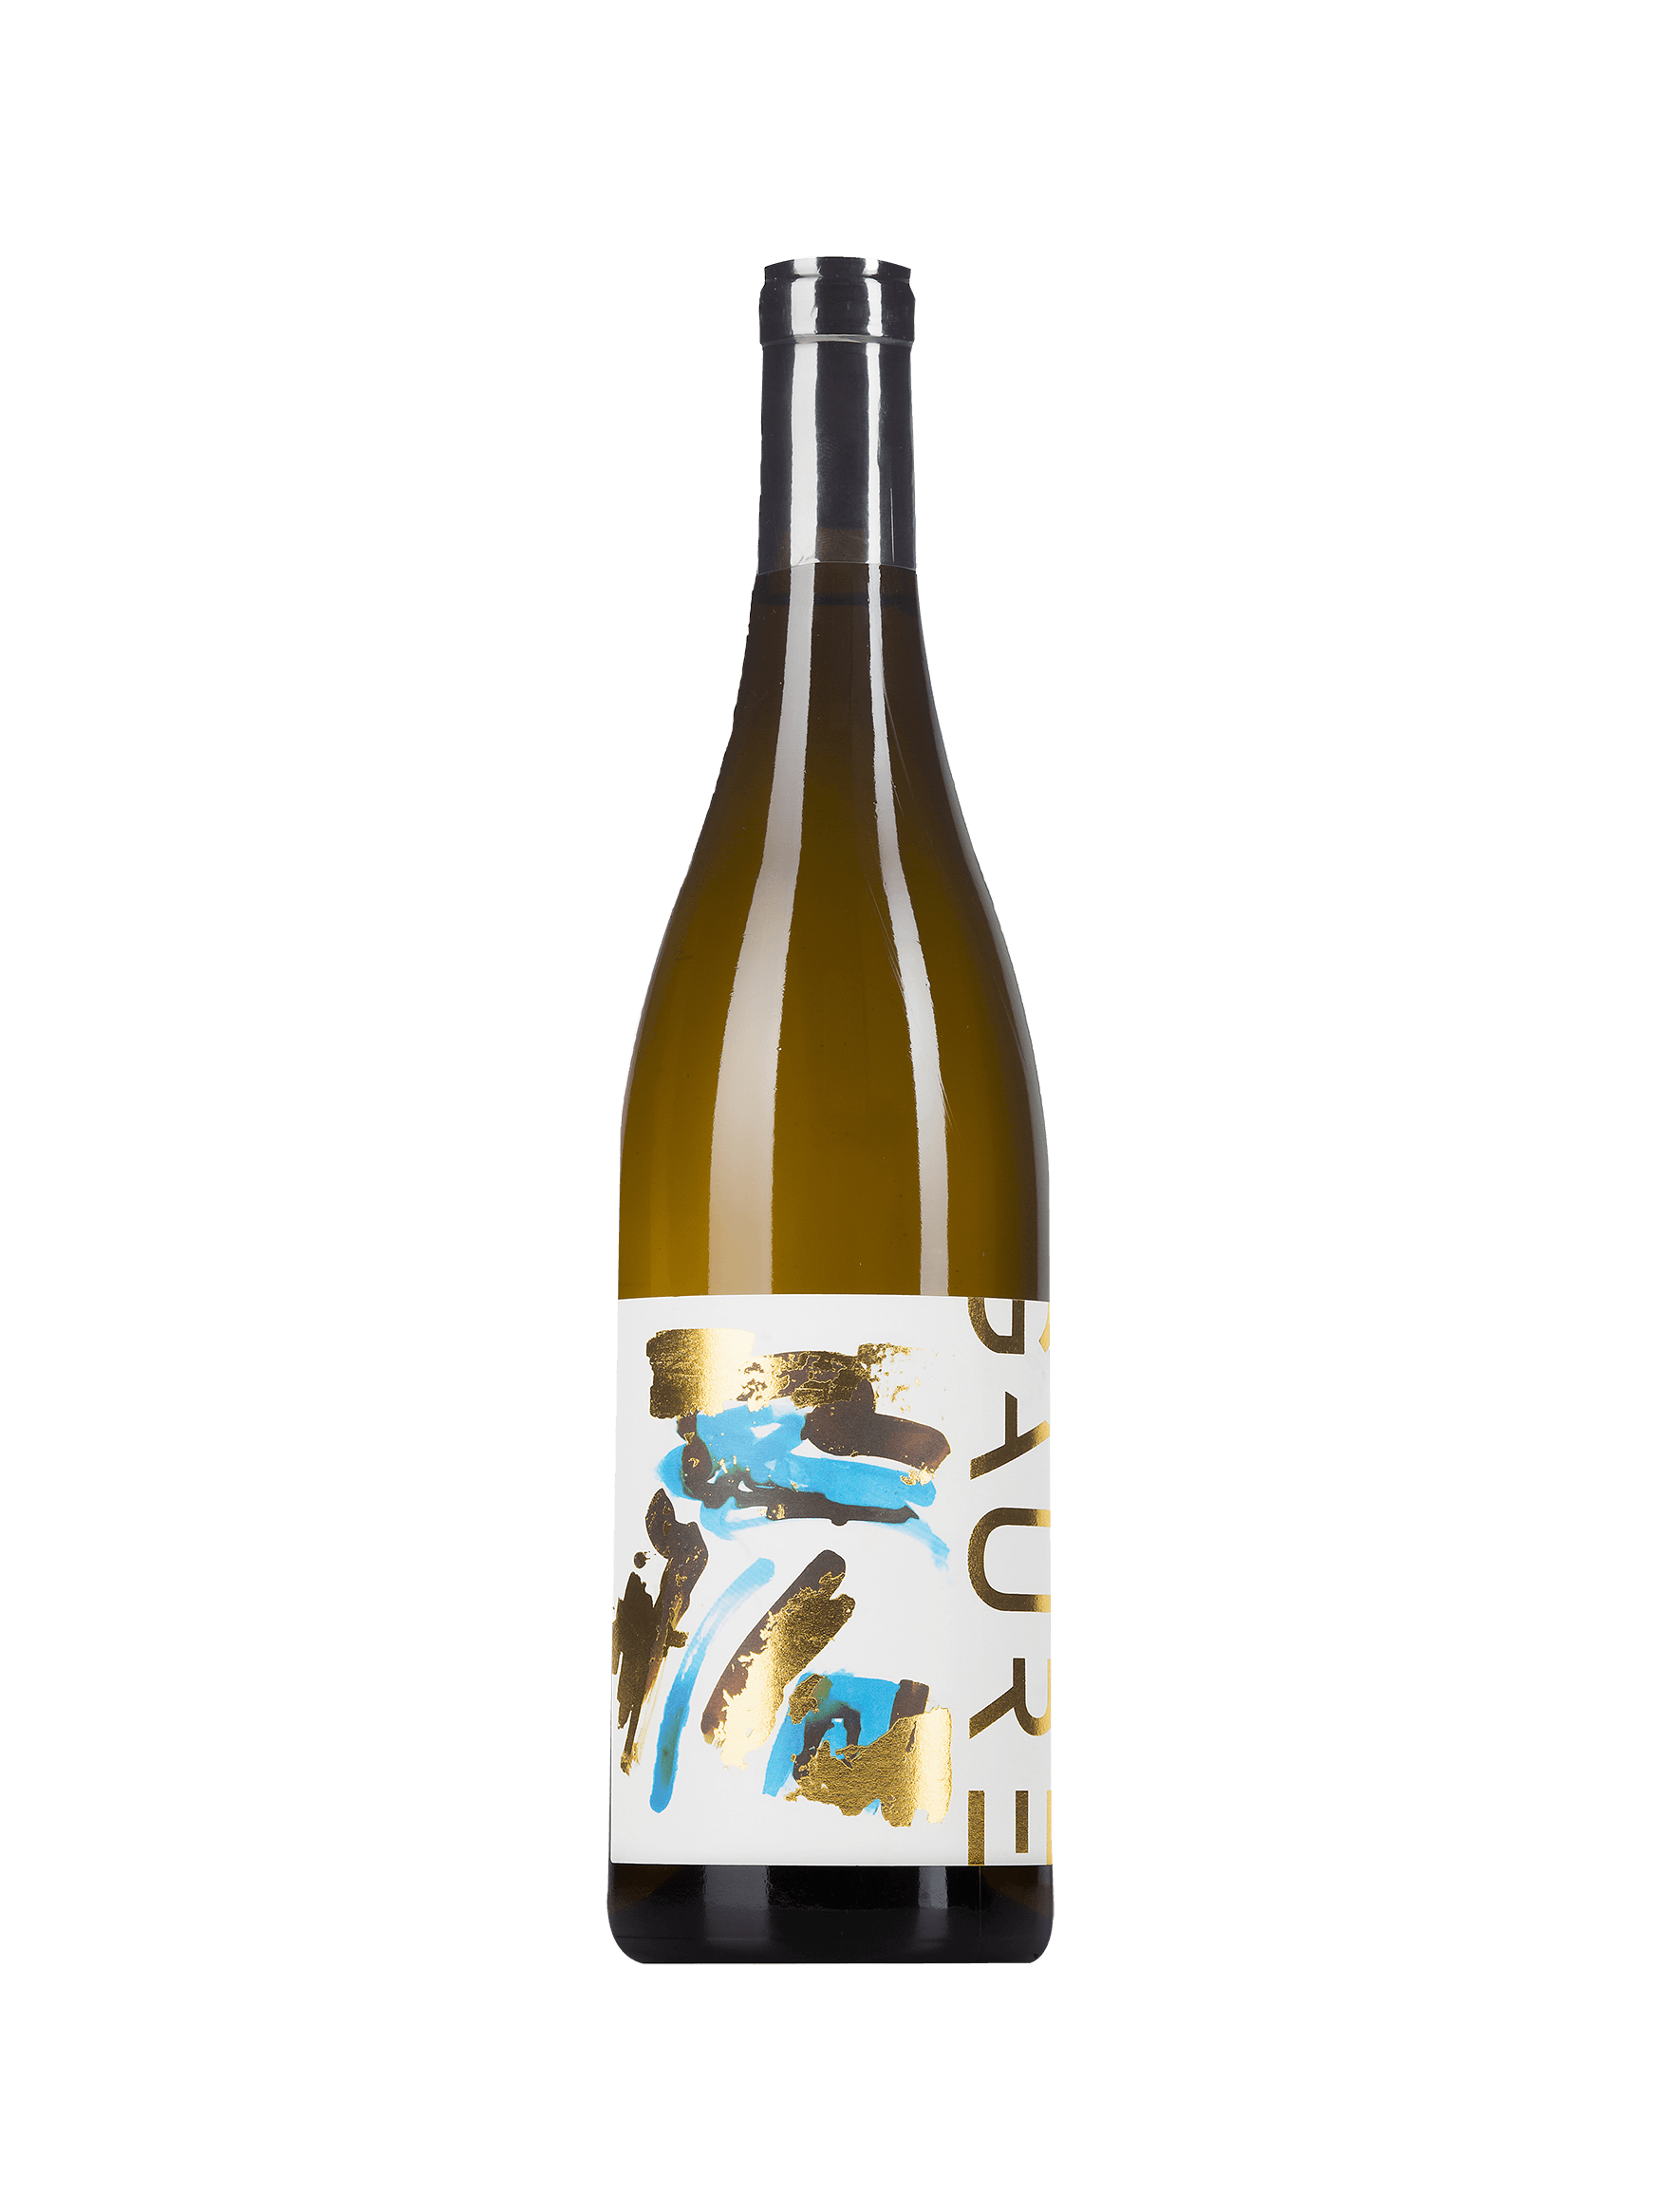 Price Of Chateau De Gaure Oppidum Blanc 2015 From